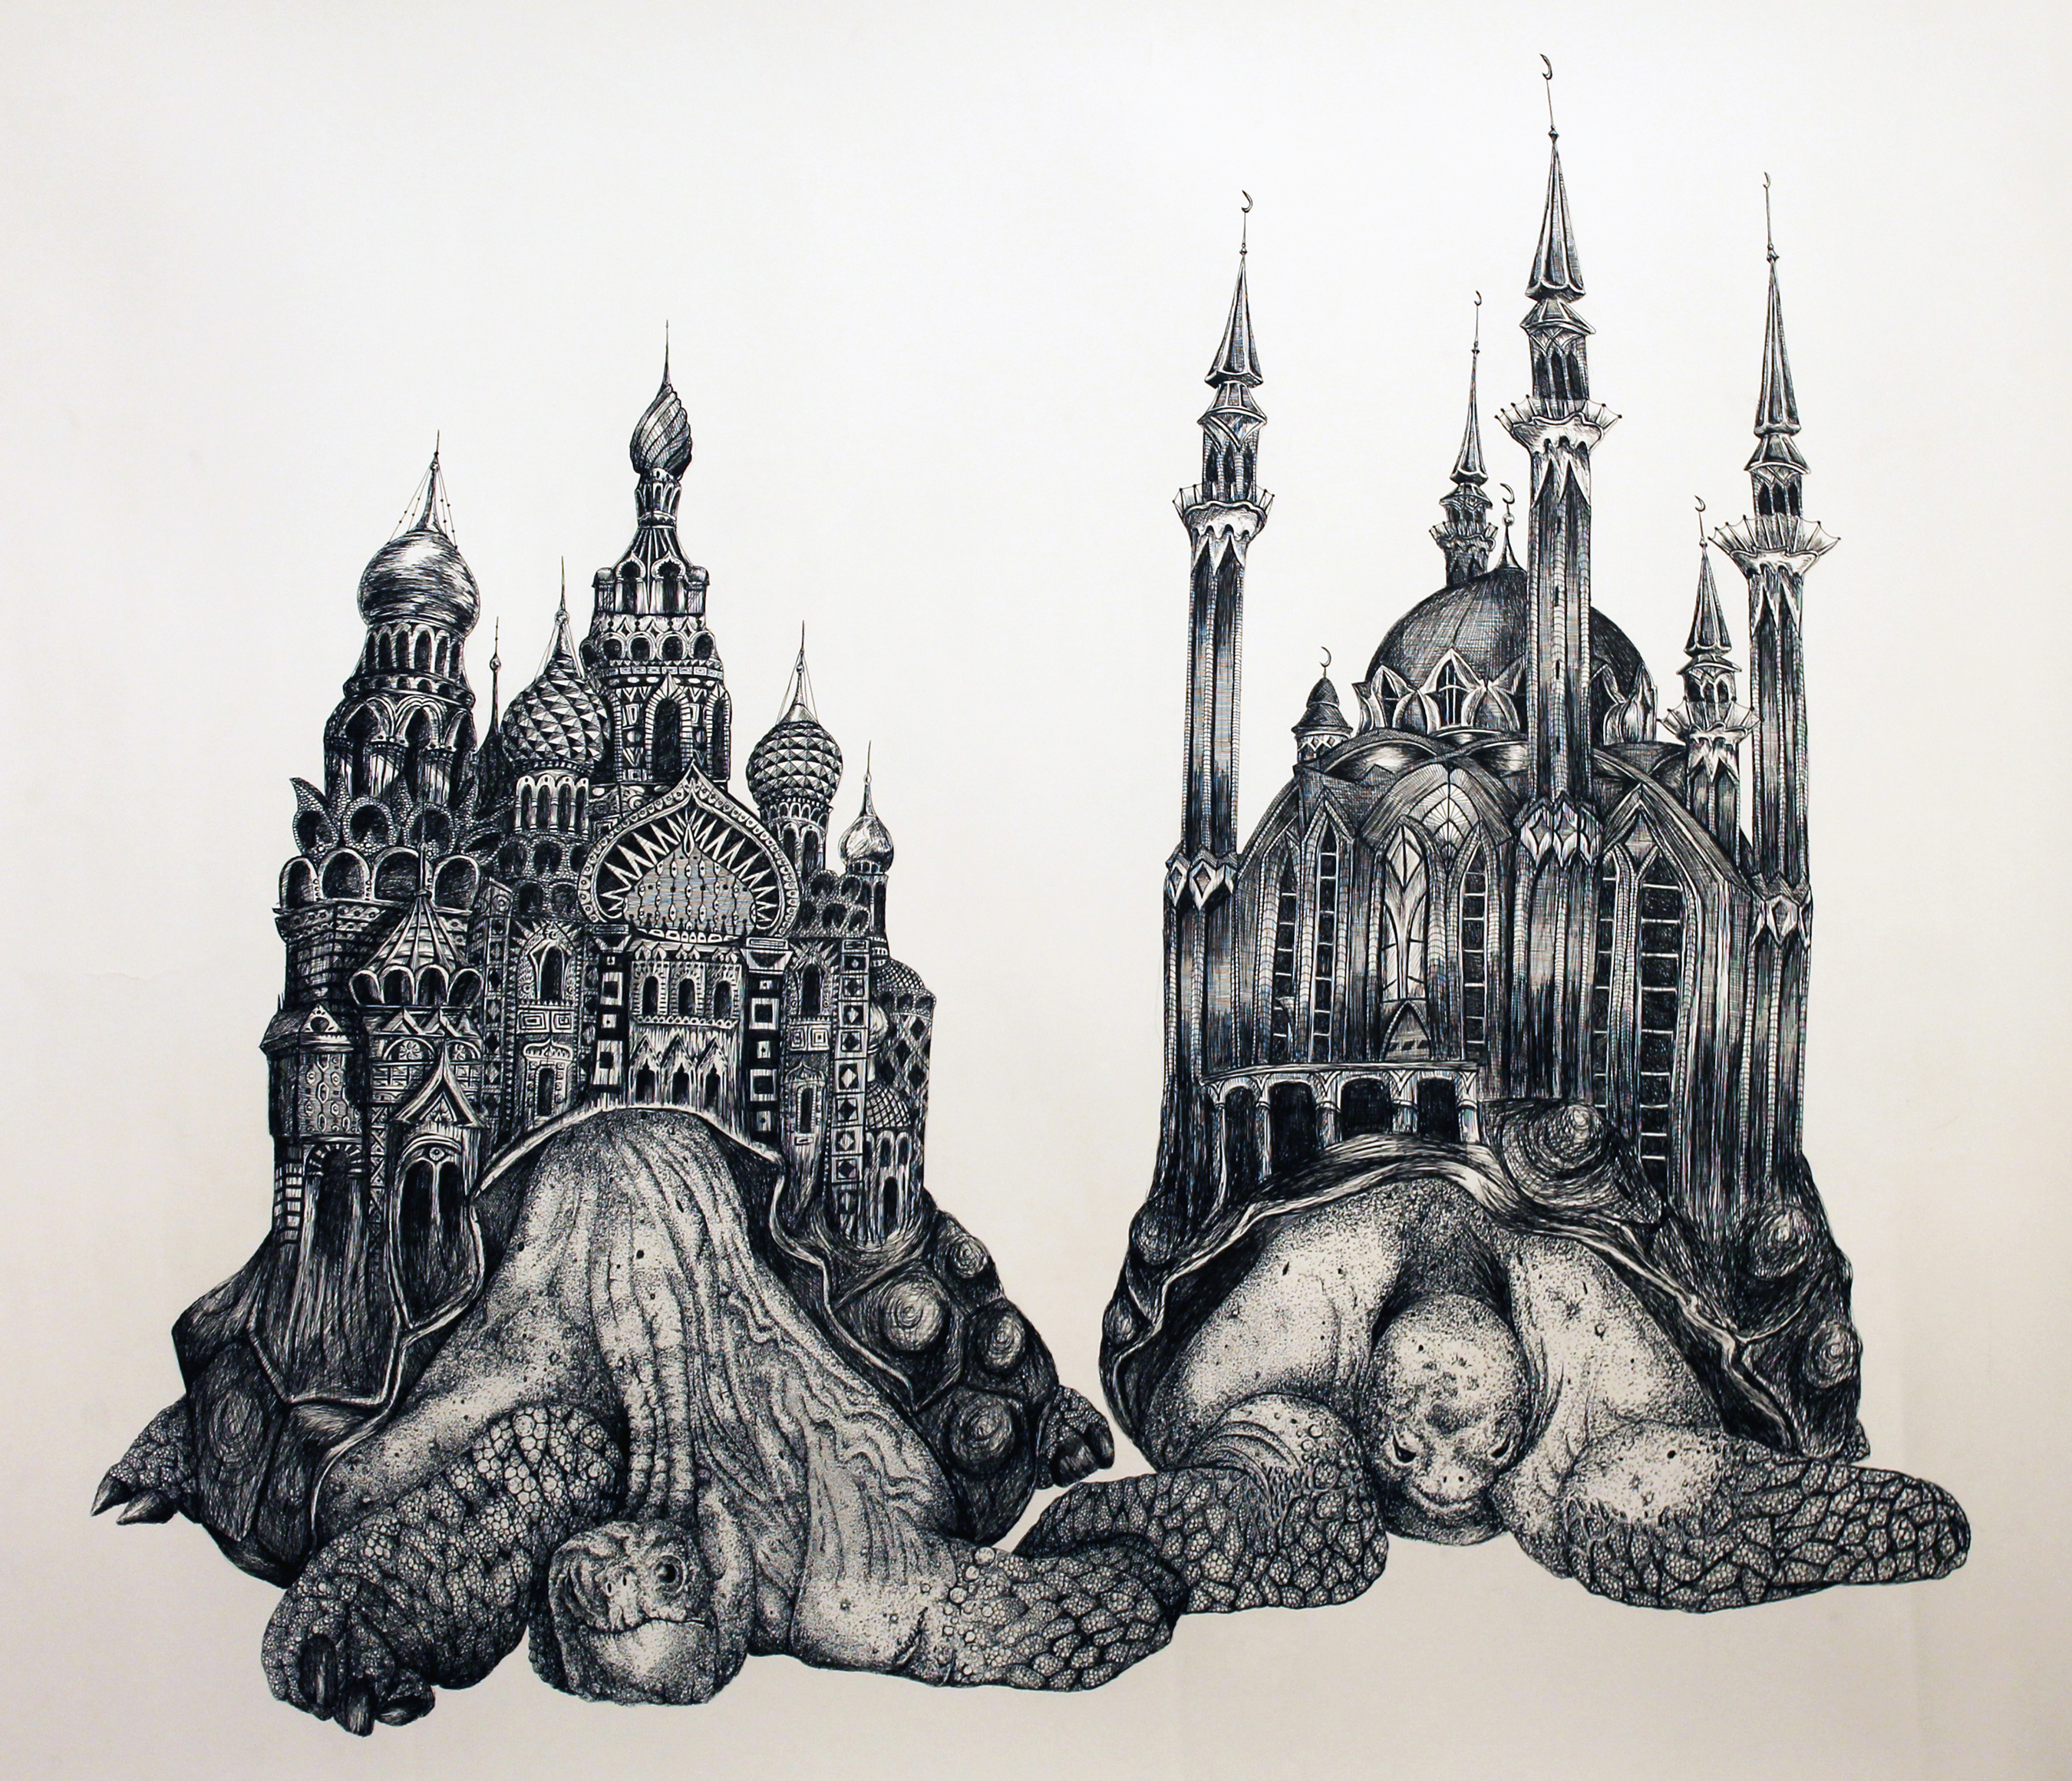 Clash Of Kings Civilization: Ink Drawings By John Haverty